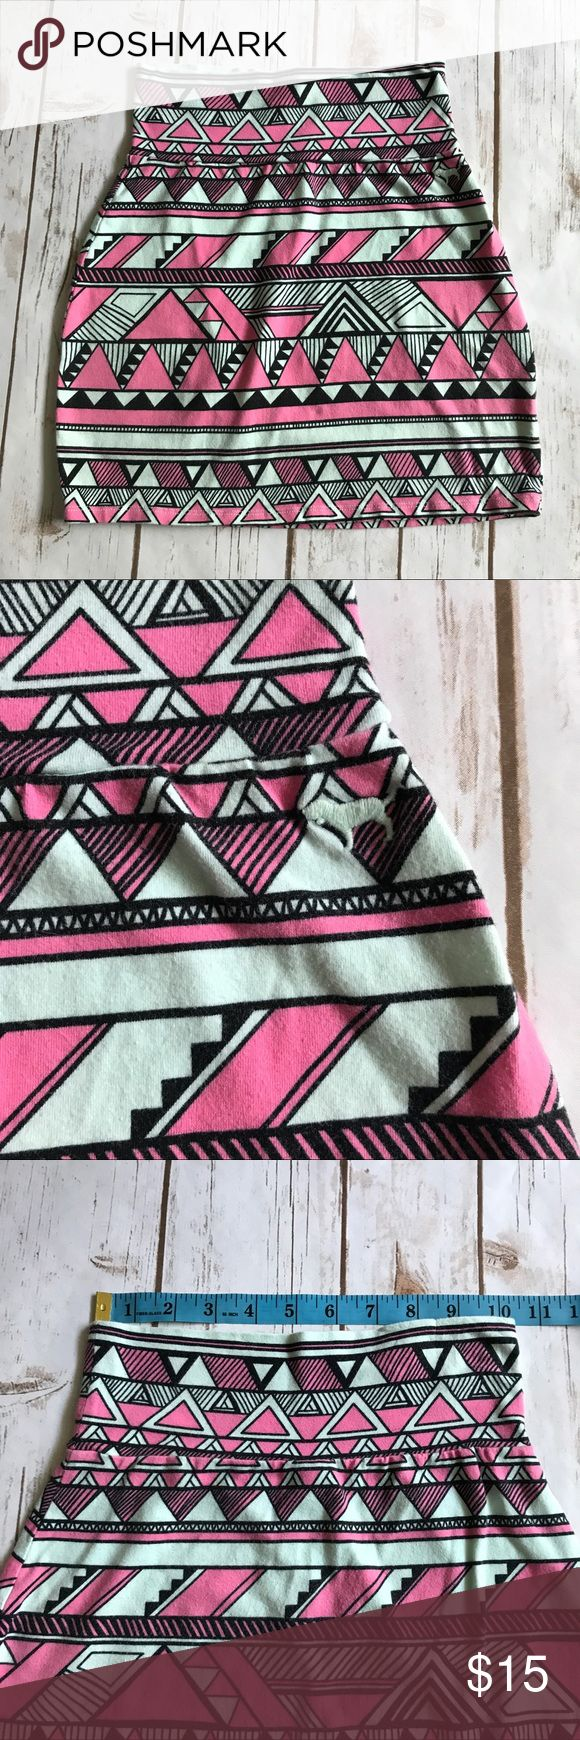 VS PINK Aztec Tribal Print Skirt Super stretchy and comfortable gently loved skirt. Measurements in pictures. 95% cotton; 5% elastane. Machine wash cold. Fuzz balls all over skirt. PINK Victoria's Secret Skirts Mini